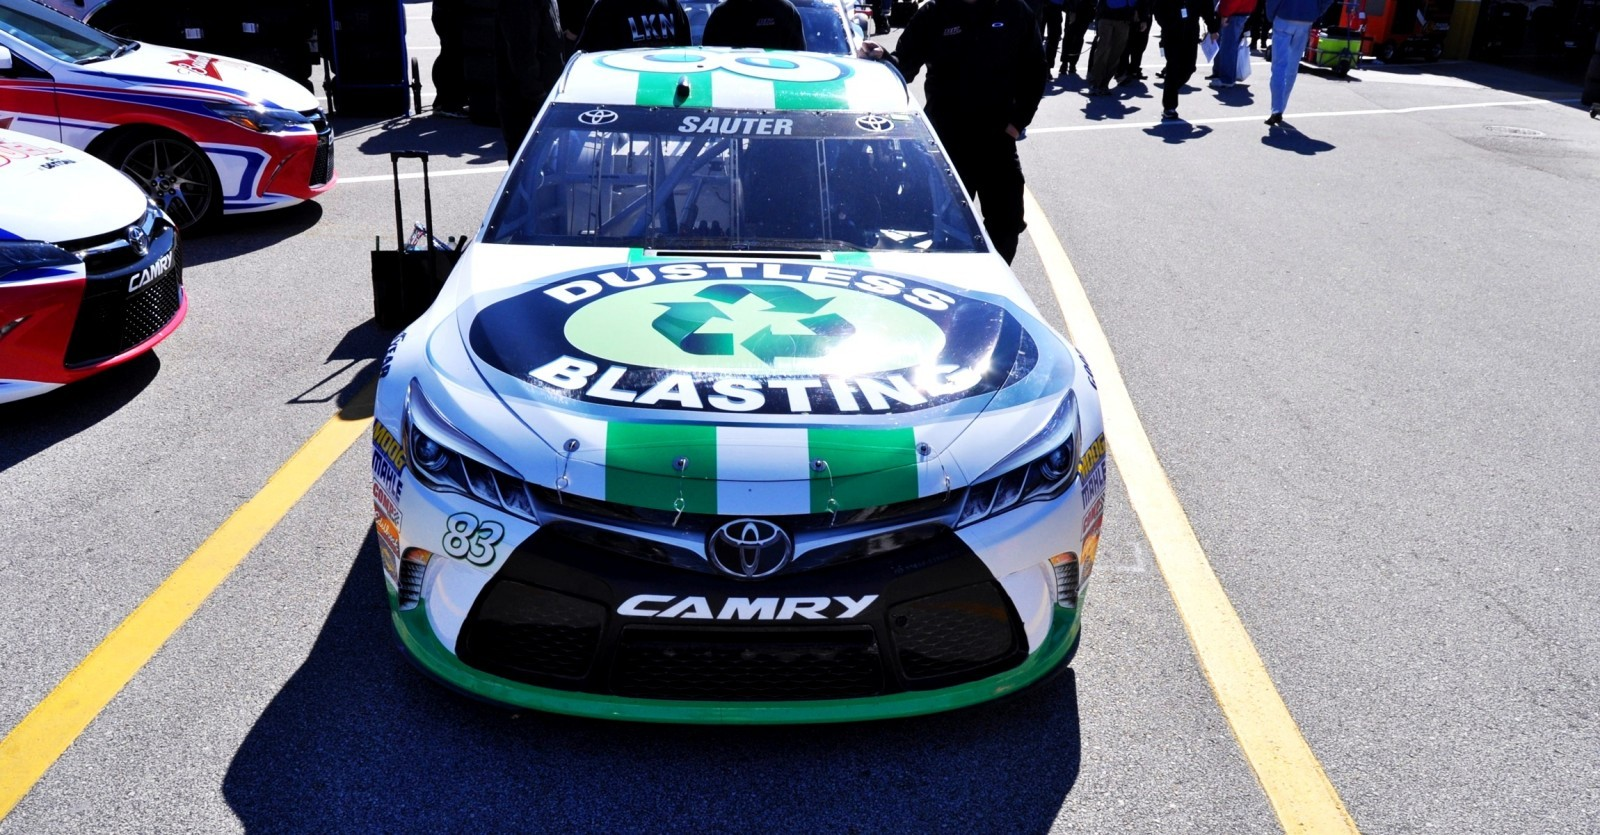 2015 Toyota Camry - DAYTONA 500 Official Pace Car 11